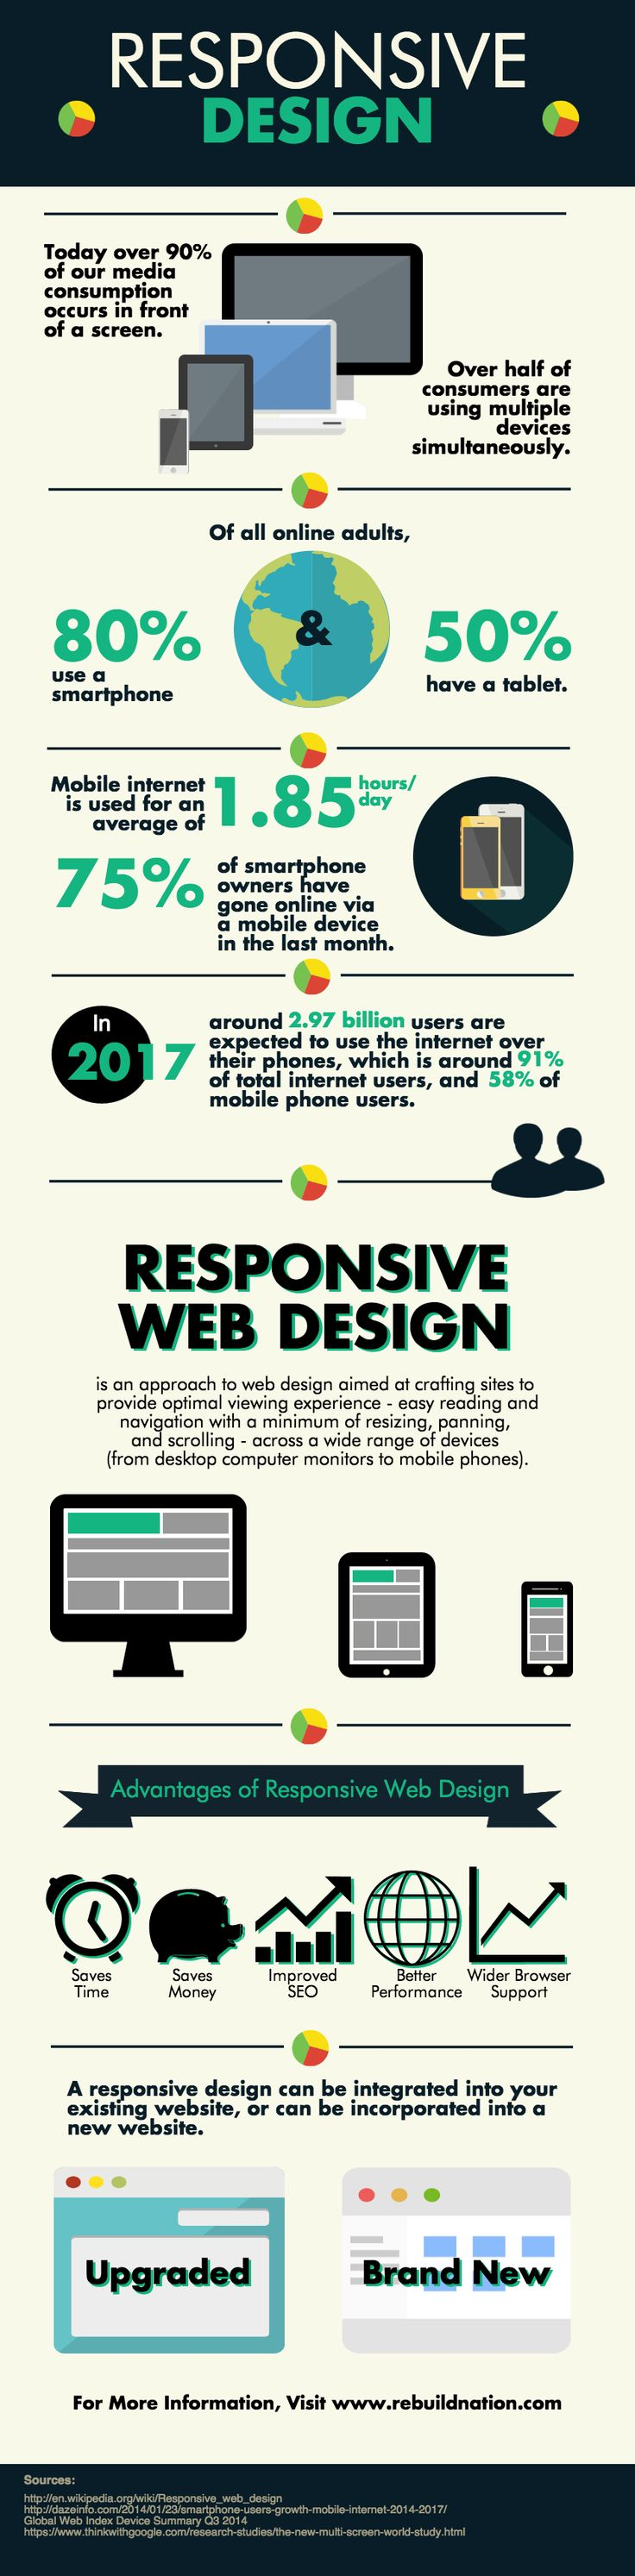 Why Responsive Design Should Be One of Your Top Priorities